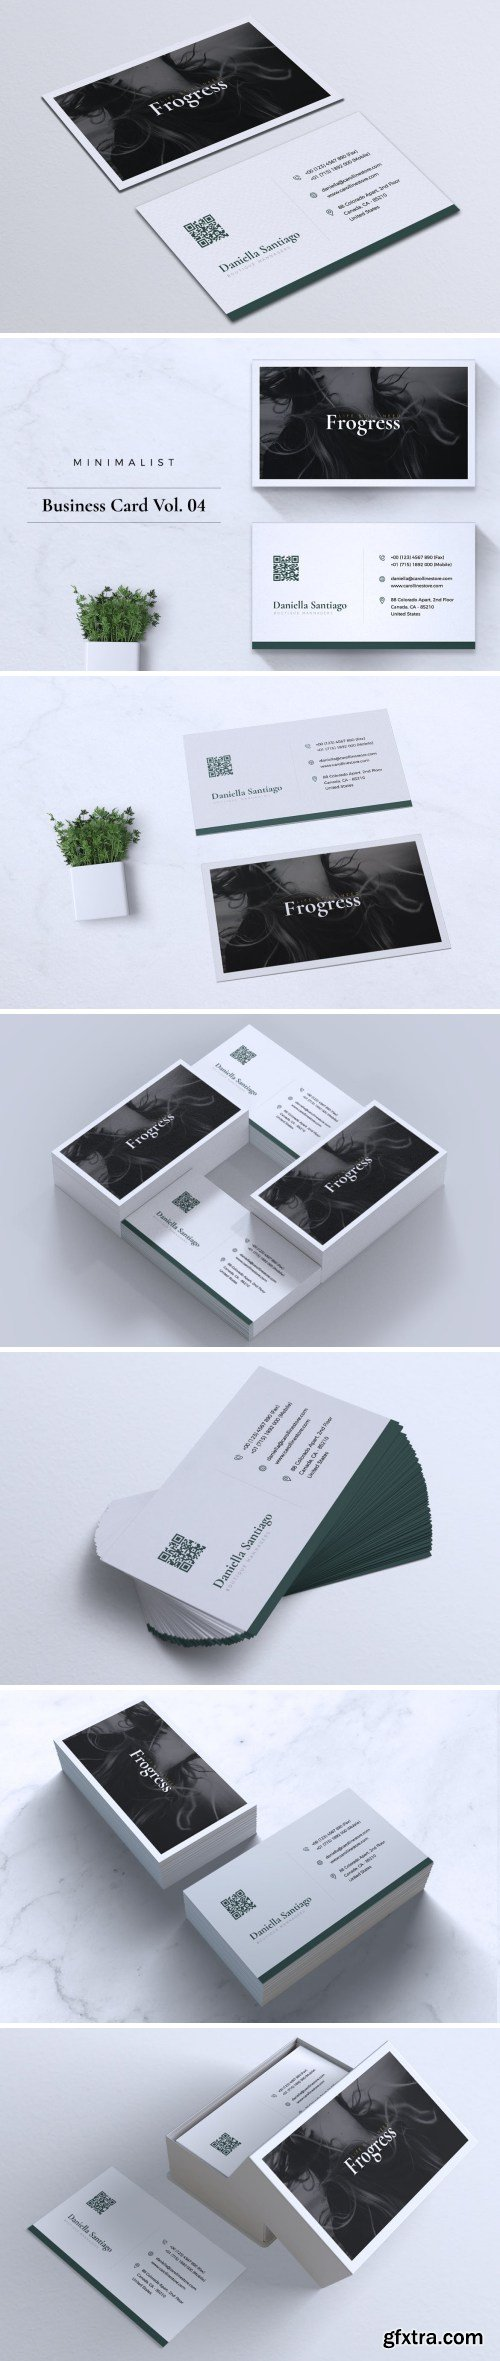 Modern Minimalist Business Card Vol. 04